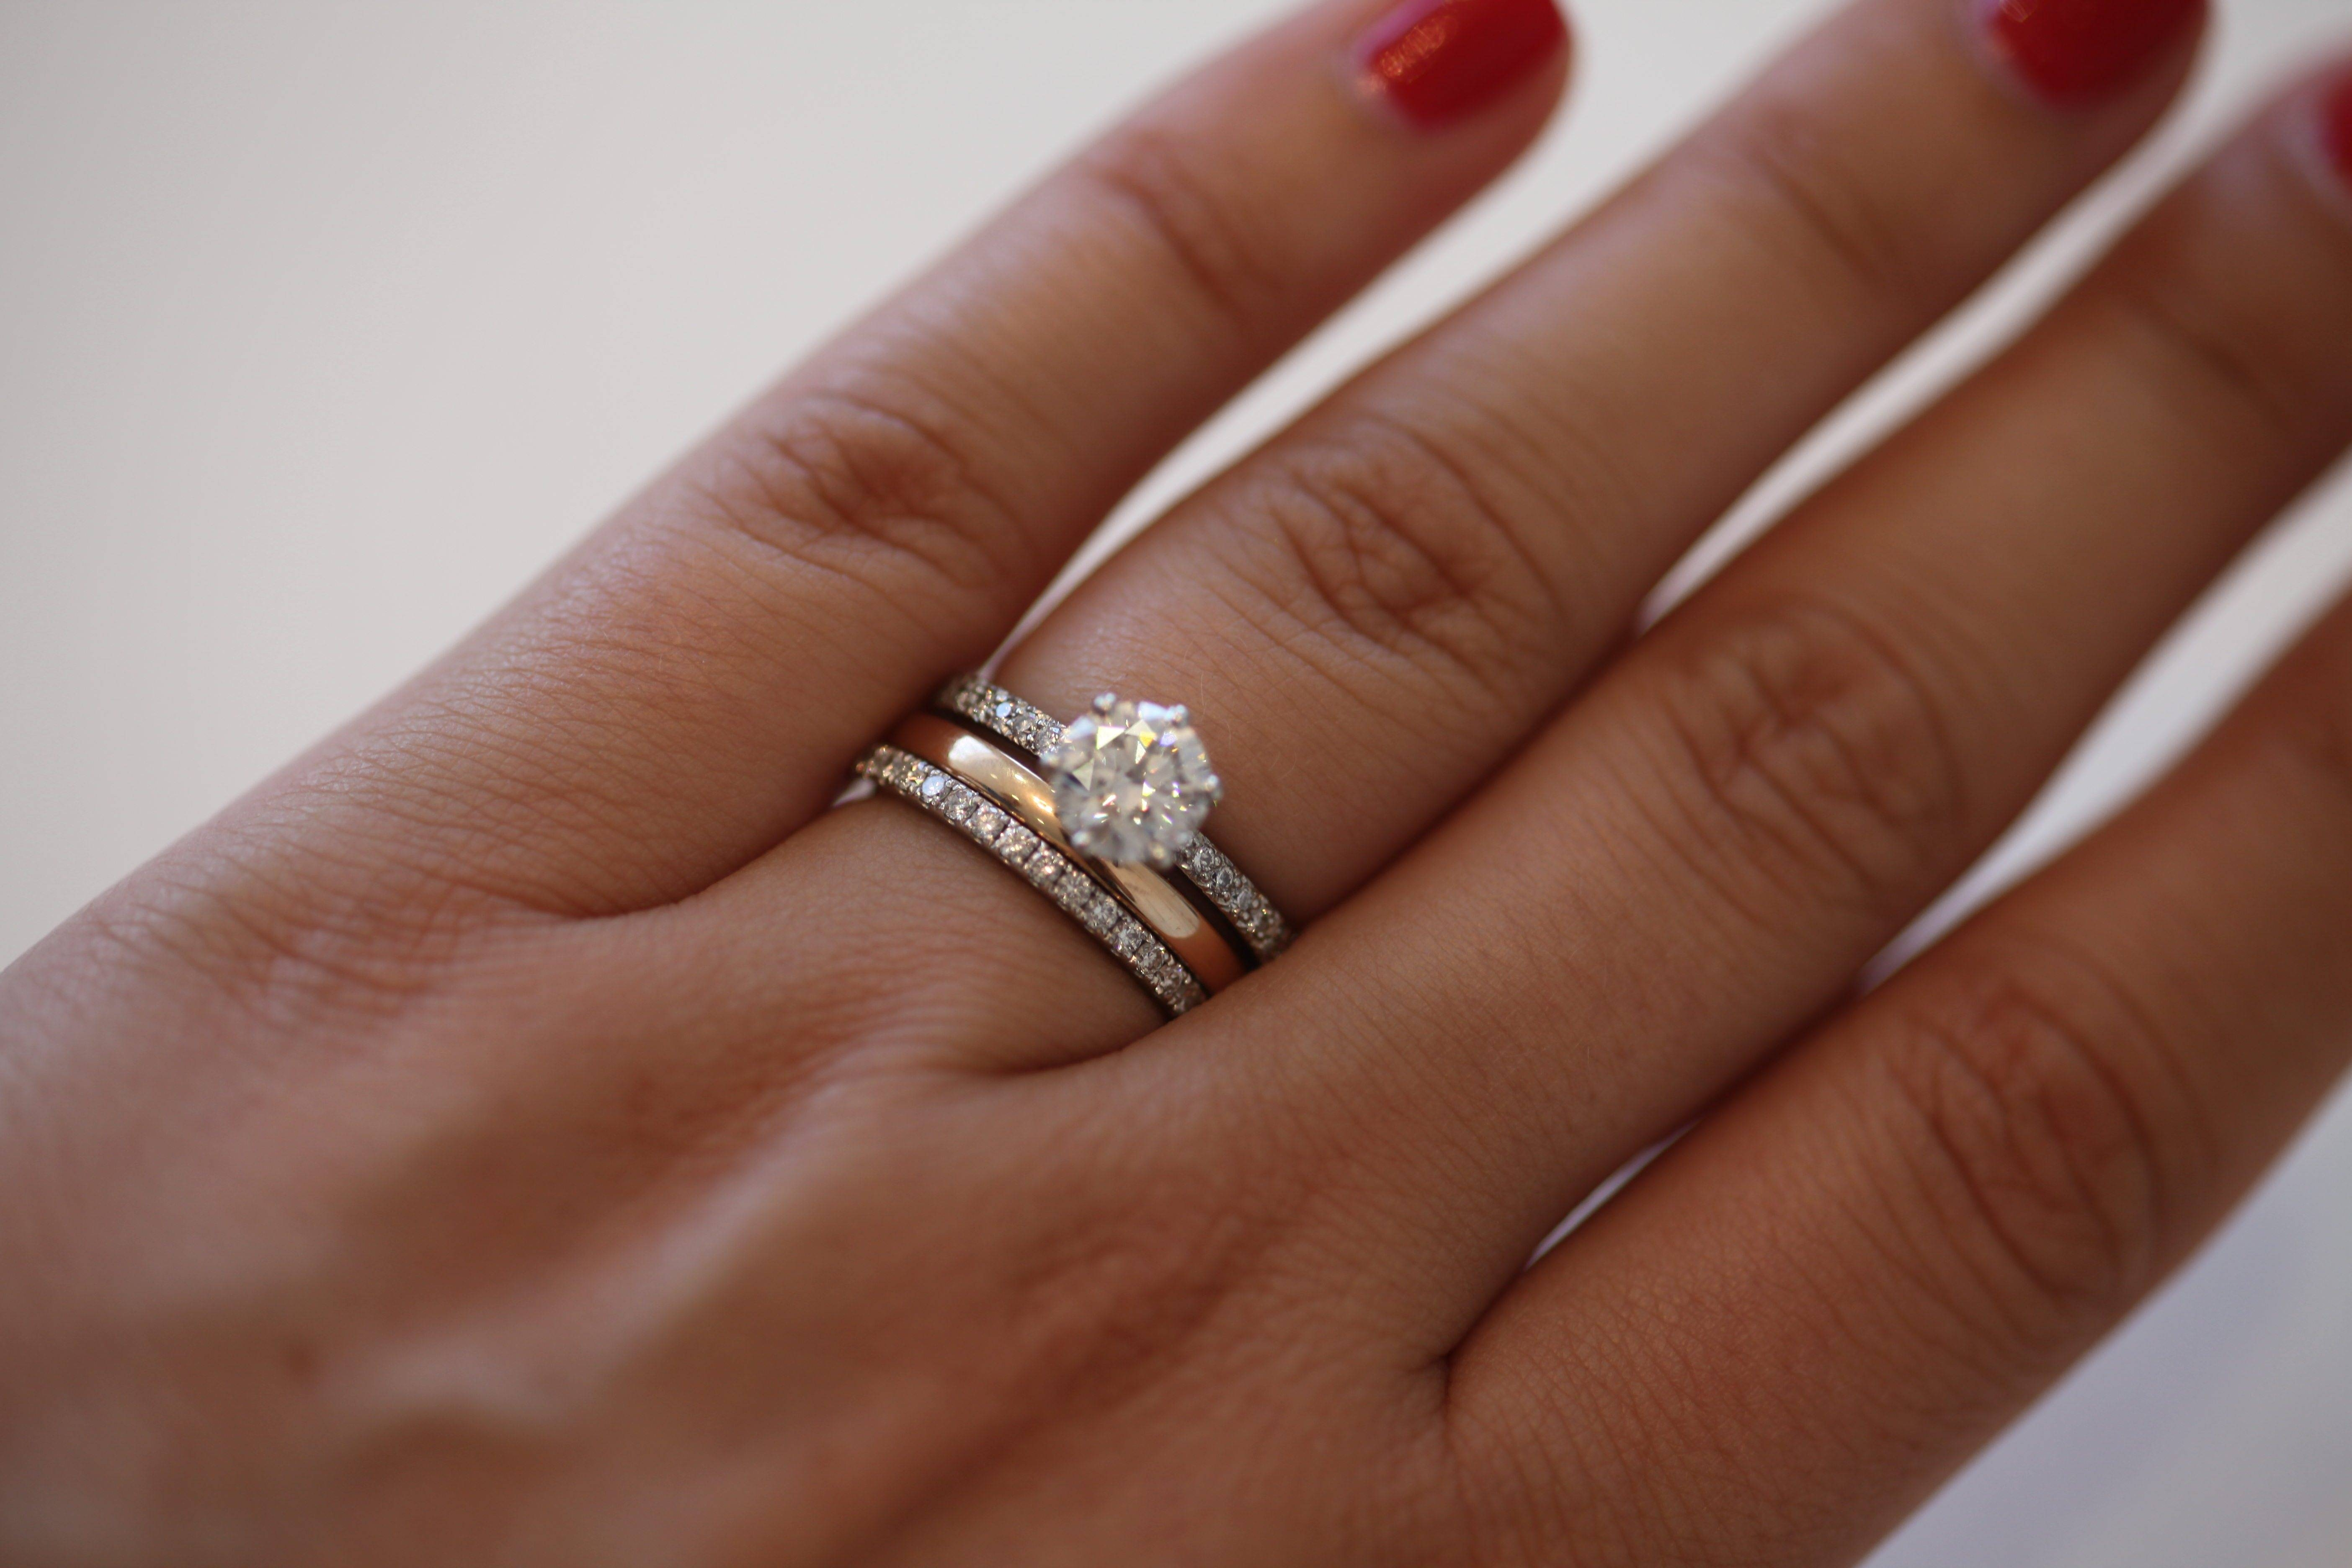 Wedding Rings : Wedding Band That Goes Around Engagement Ring Regarding Wedding Engagement Bands (View 15 of 15)